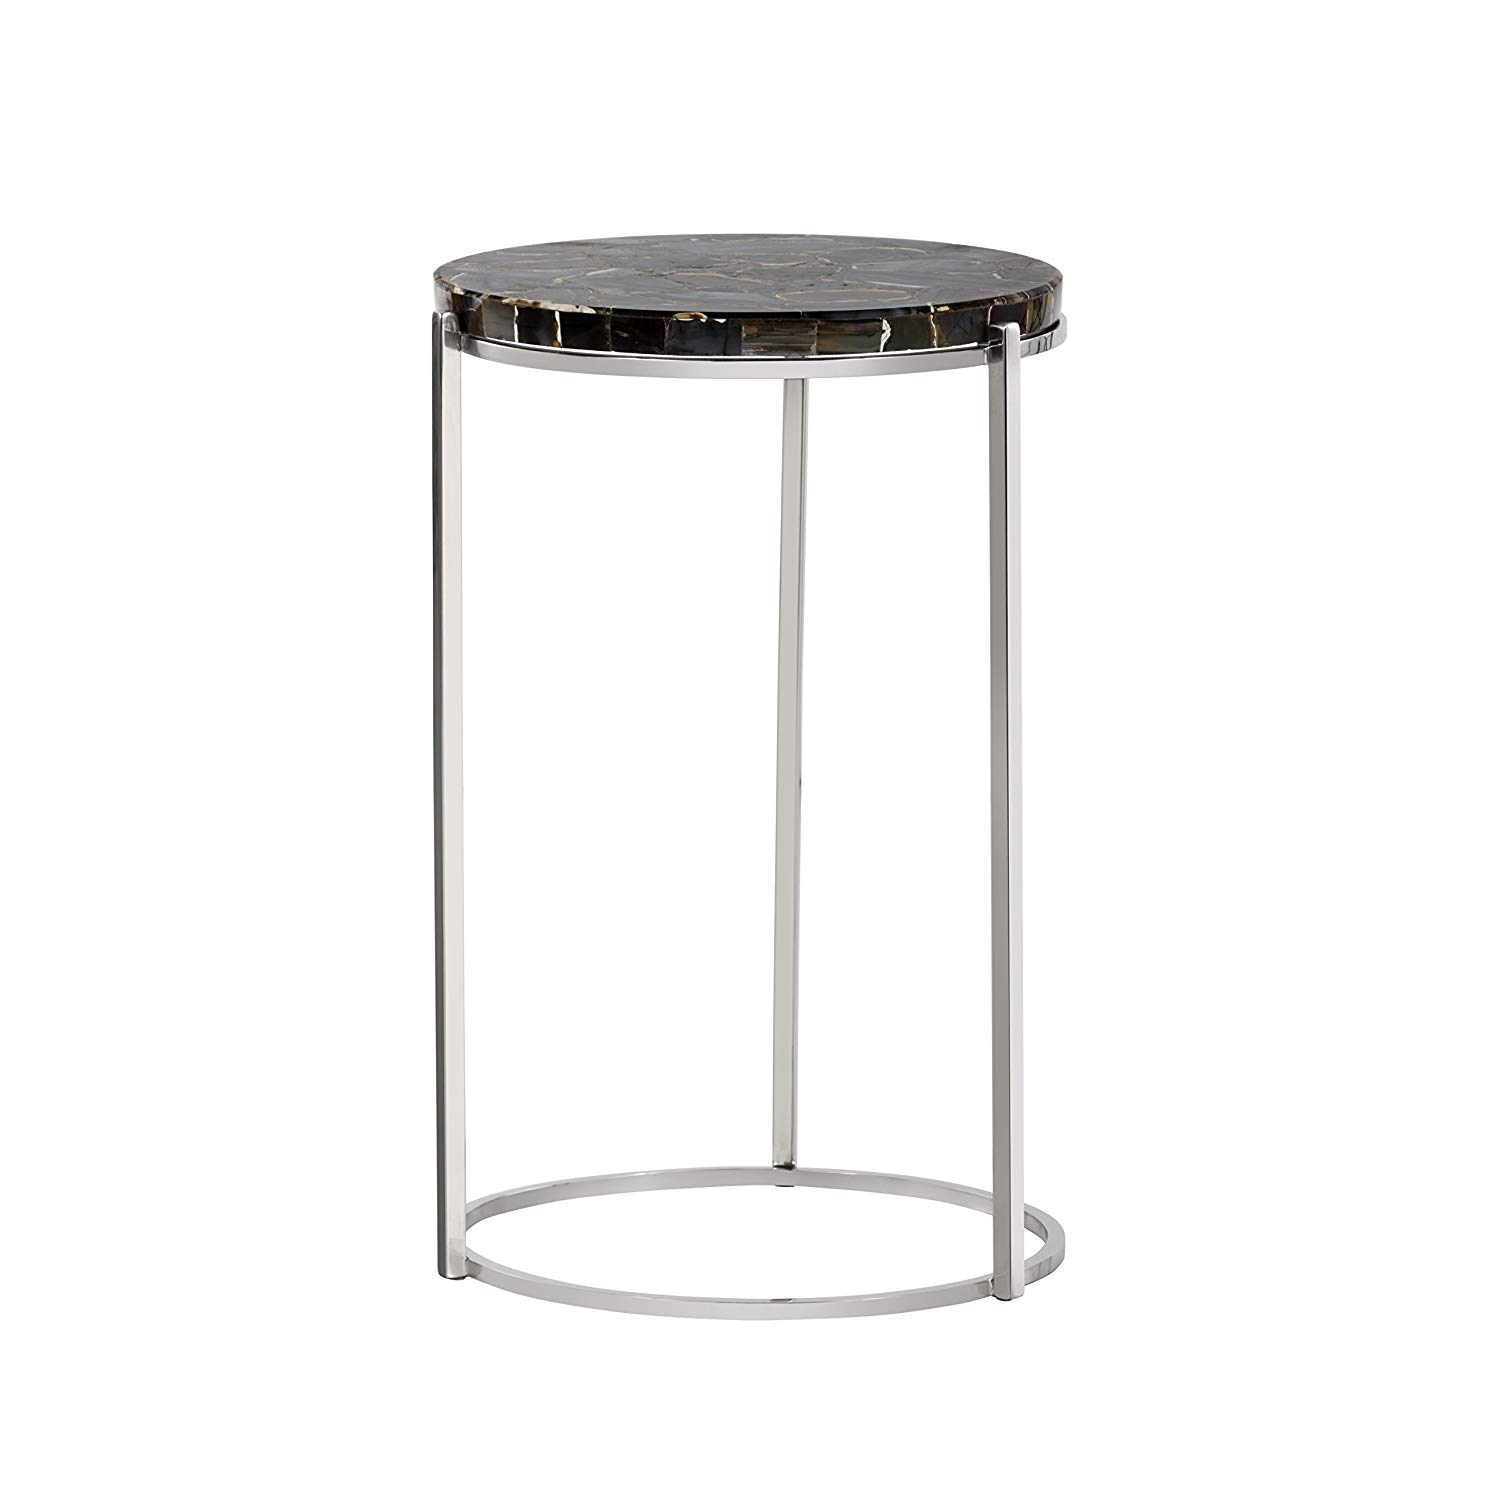 sunpan modern tillie end table black agate kitchen bgl accent dining wooden garden small stand pendant lighting magnussen allure ethan allen rugs retro inspired furniture tiffany